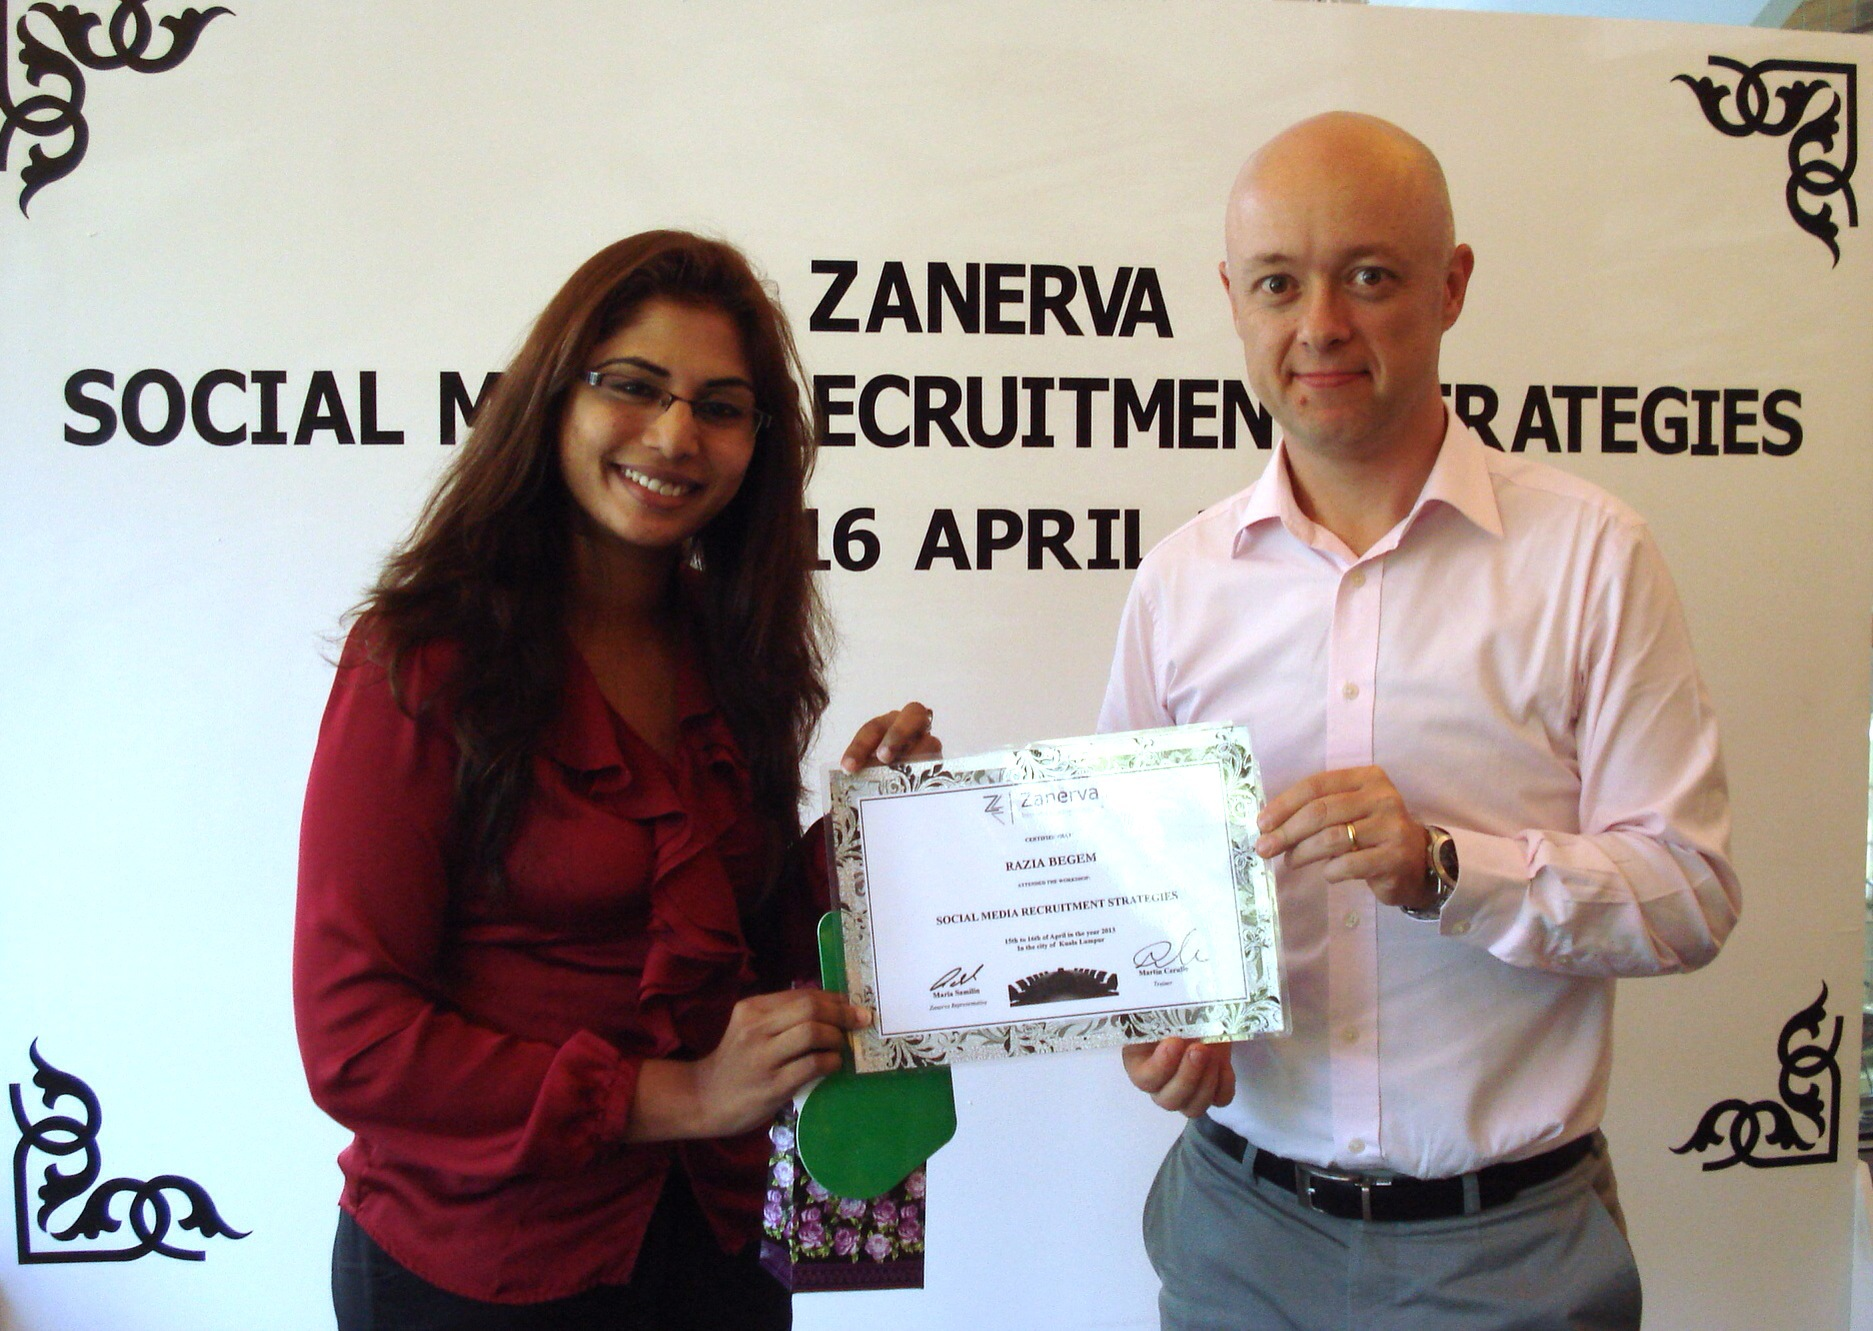 Razia Begem, Recruitment Lead at Xchanging Asia Pacific Sdn Bhd  receiving her certificate of participation for attending the Social Media Recruitment Strategies Workshop in Kuala Lumpur